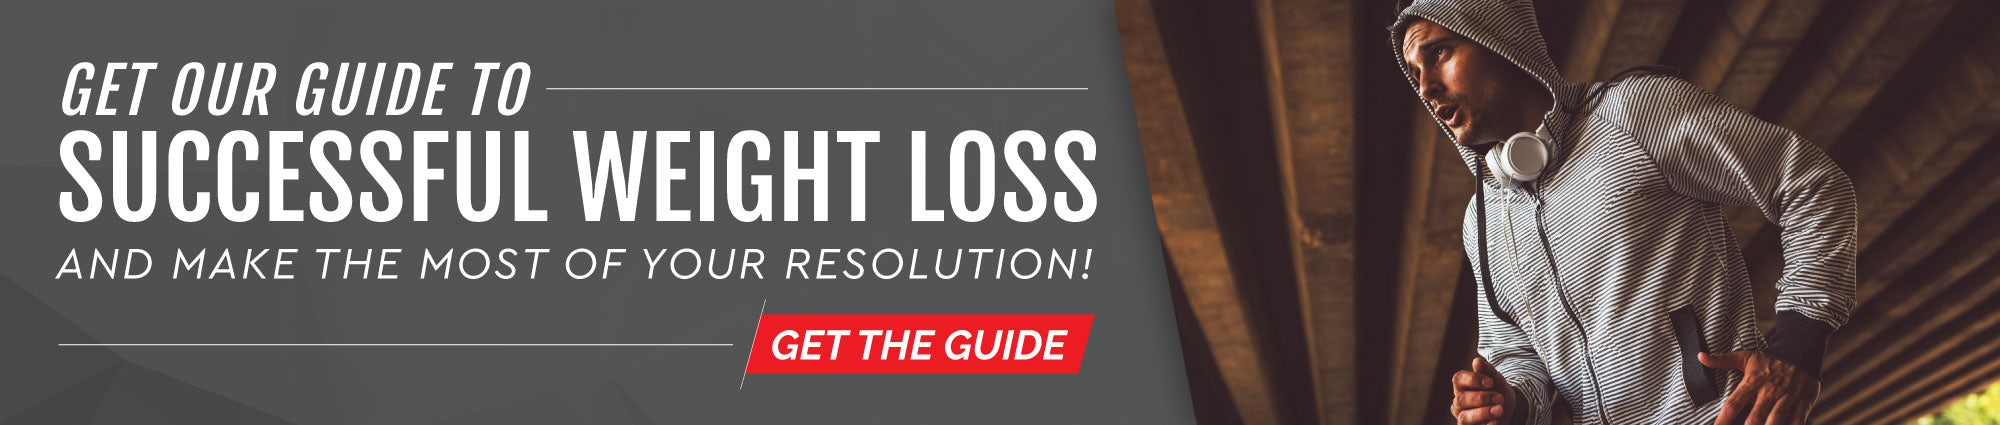 Get our guide to Successful Weight Loss and make the most of your resolution! Get the guide.